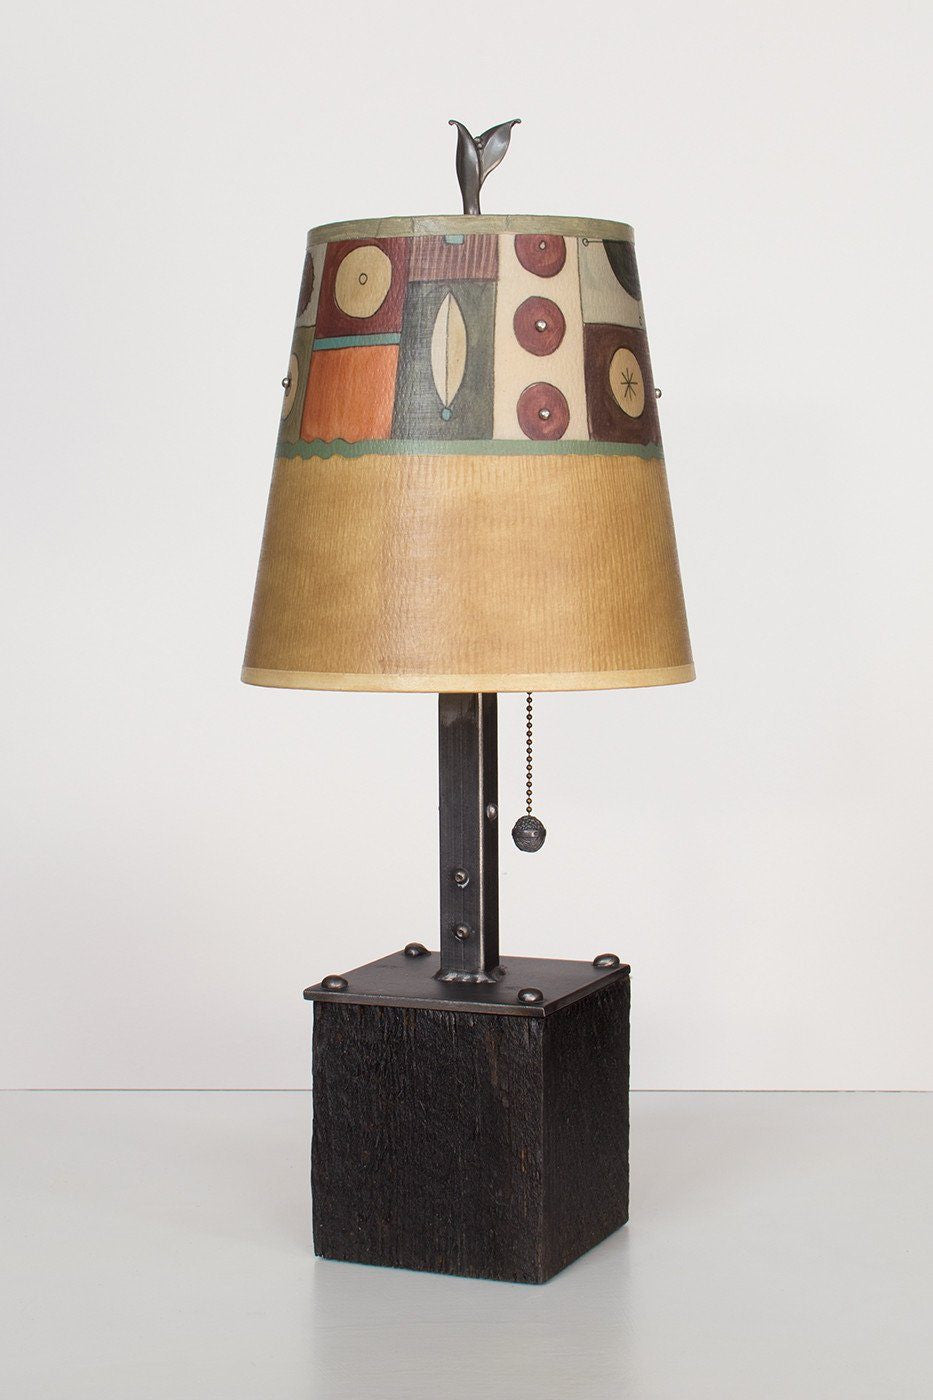 Steel Table Lamp on Reclaimed Wood with Small Drum Shade in Lucky Mosaic Hickory Lit